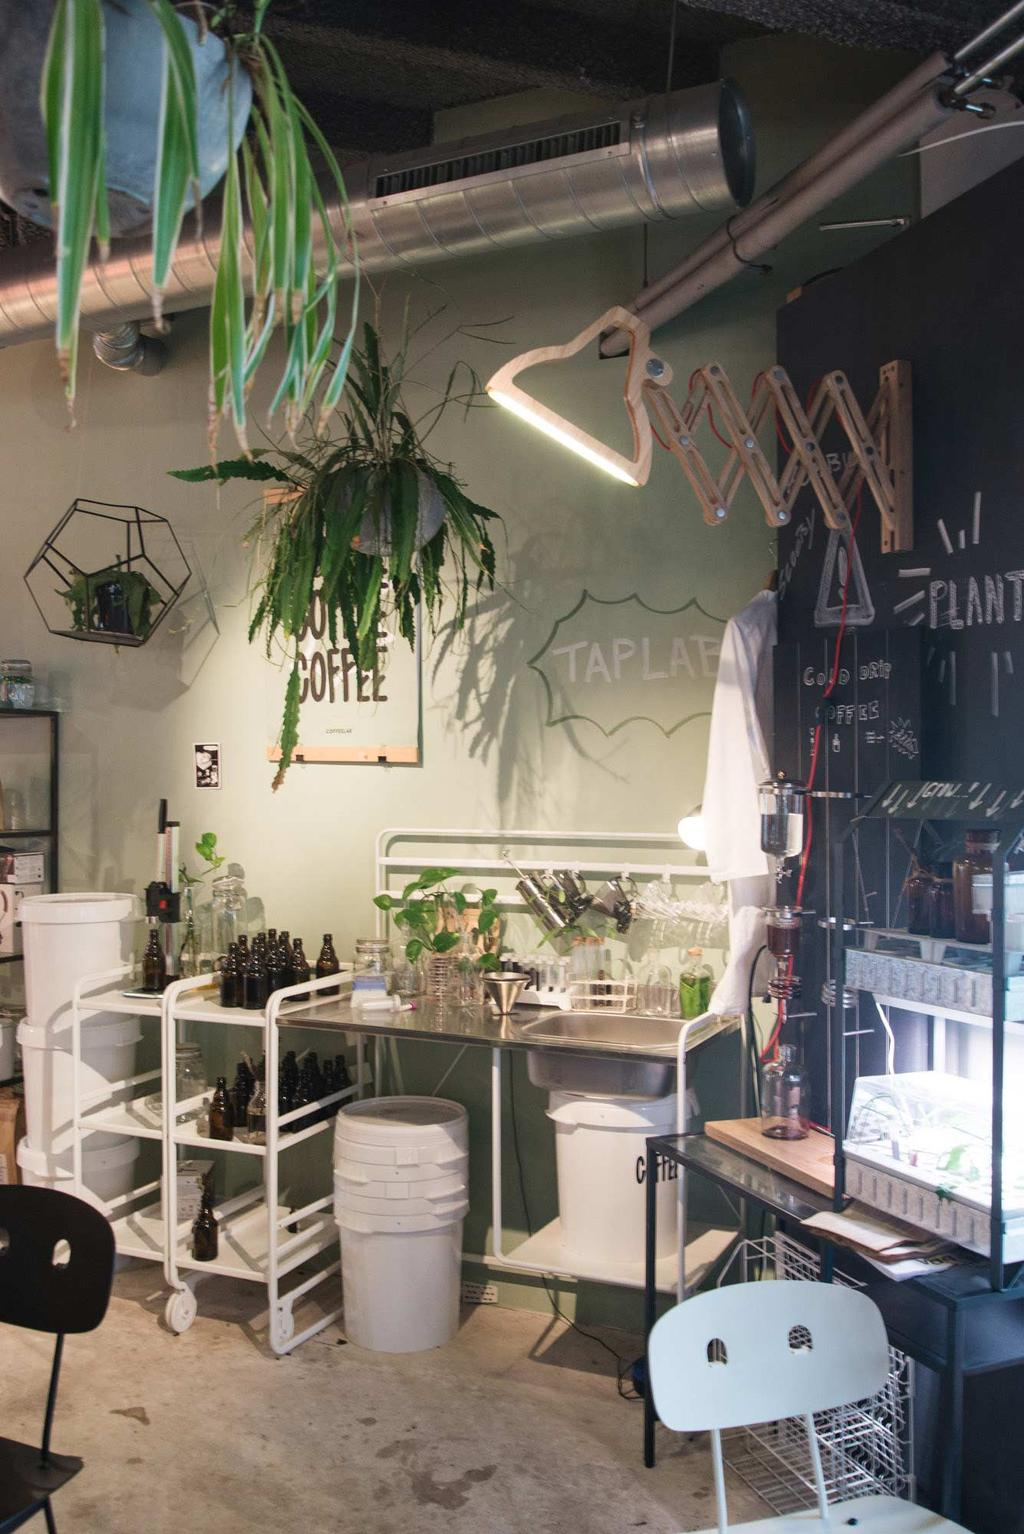 Coffee lab Eindhoven remade with love